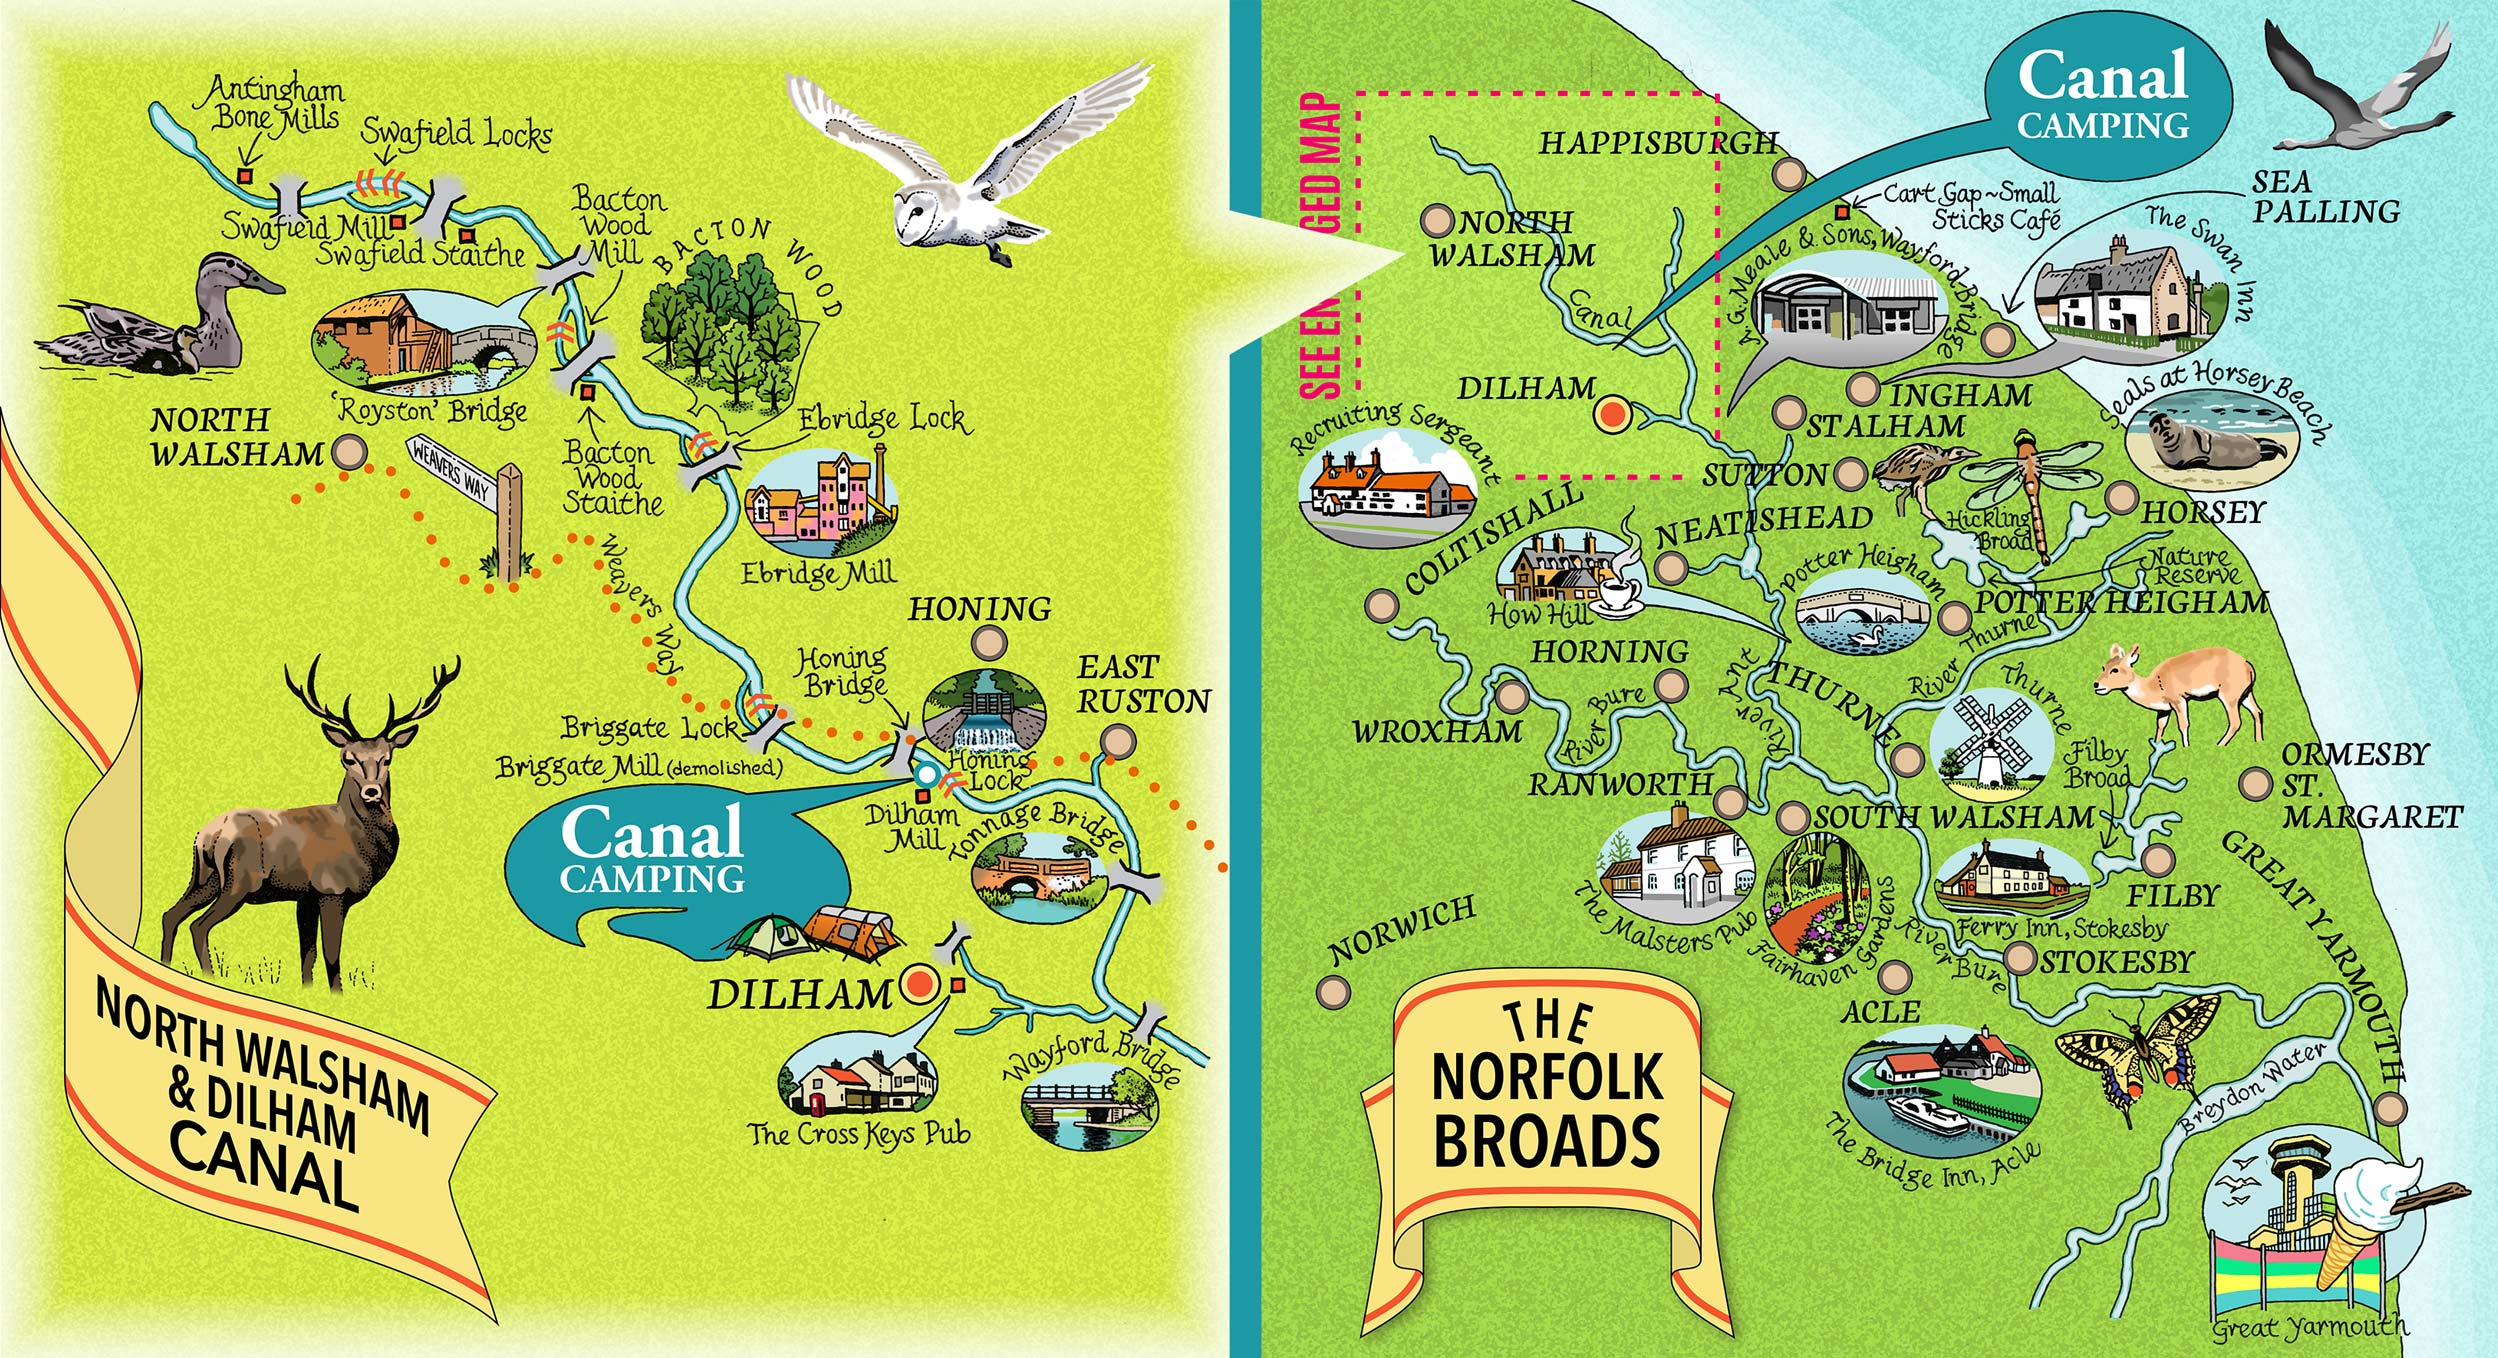 Canal Camping local area map